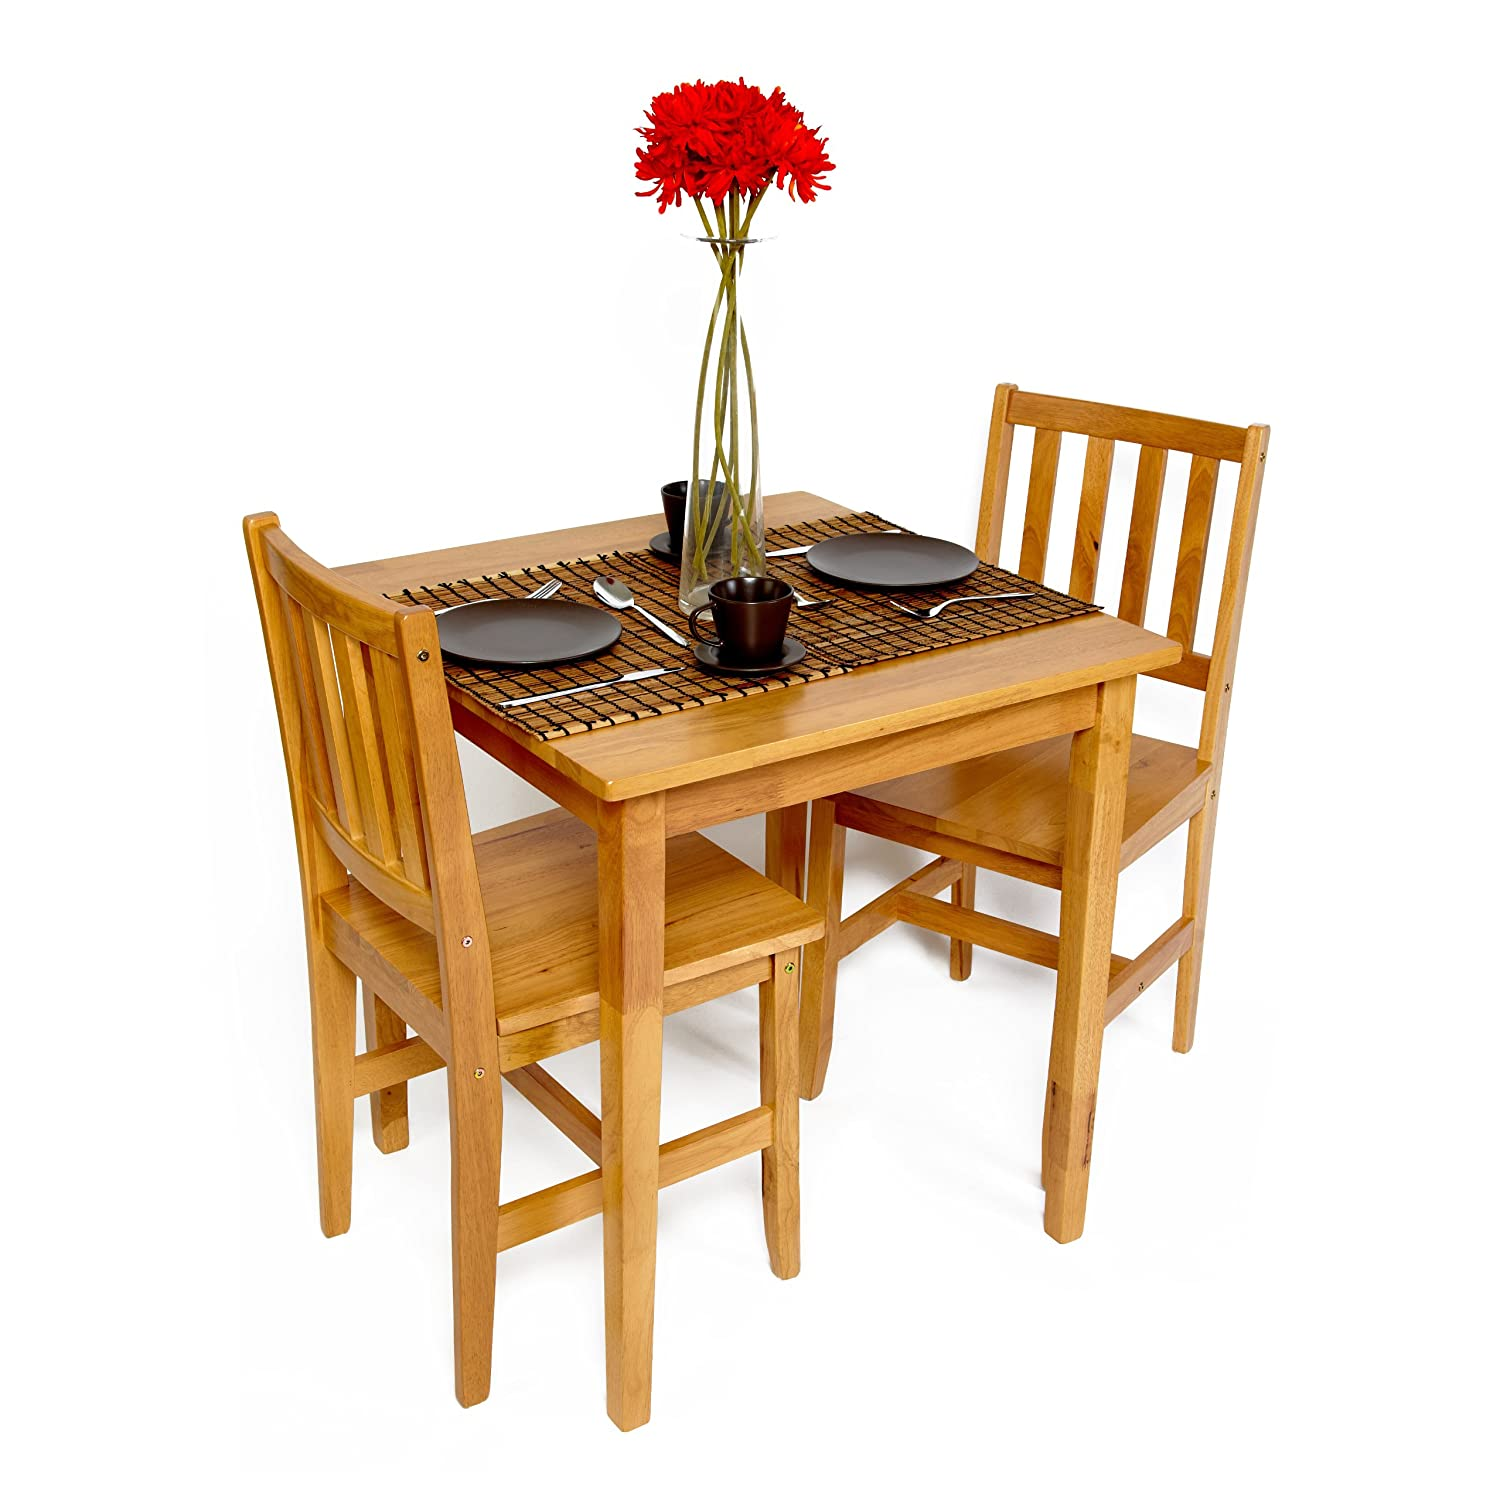 Table and chairs set dining bistro small cafe tables wood wooden 2 chair kitchen - Small two person dining table ...